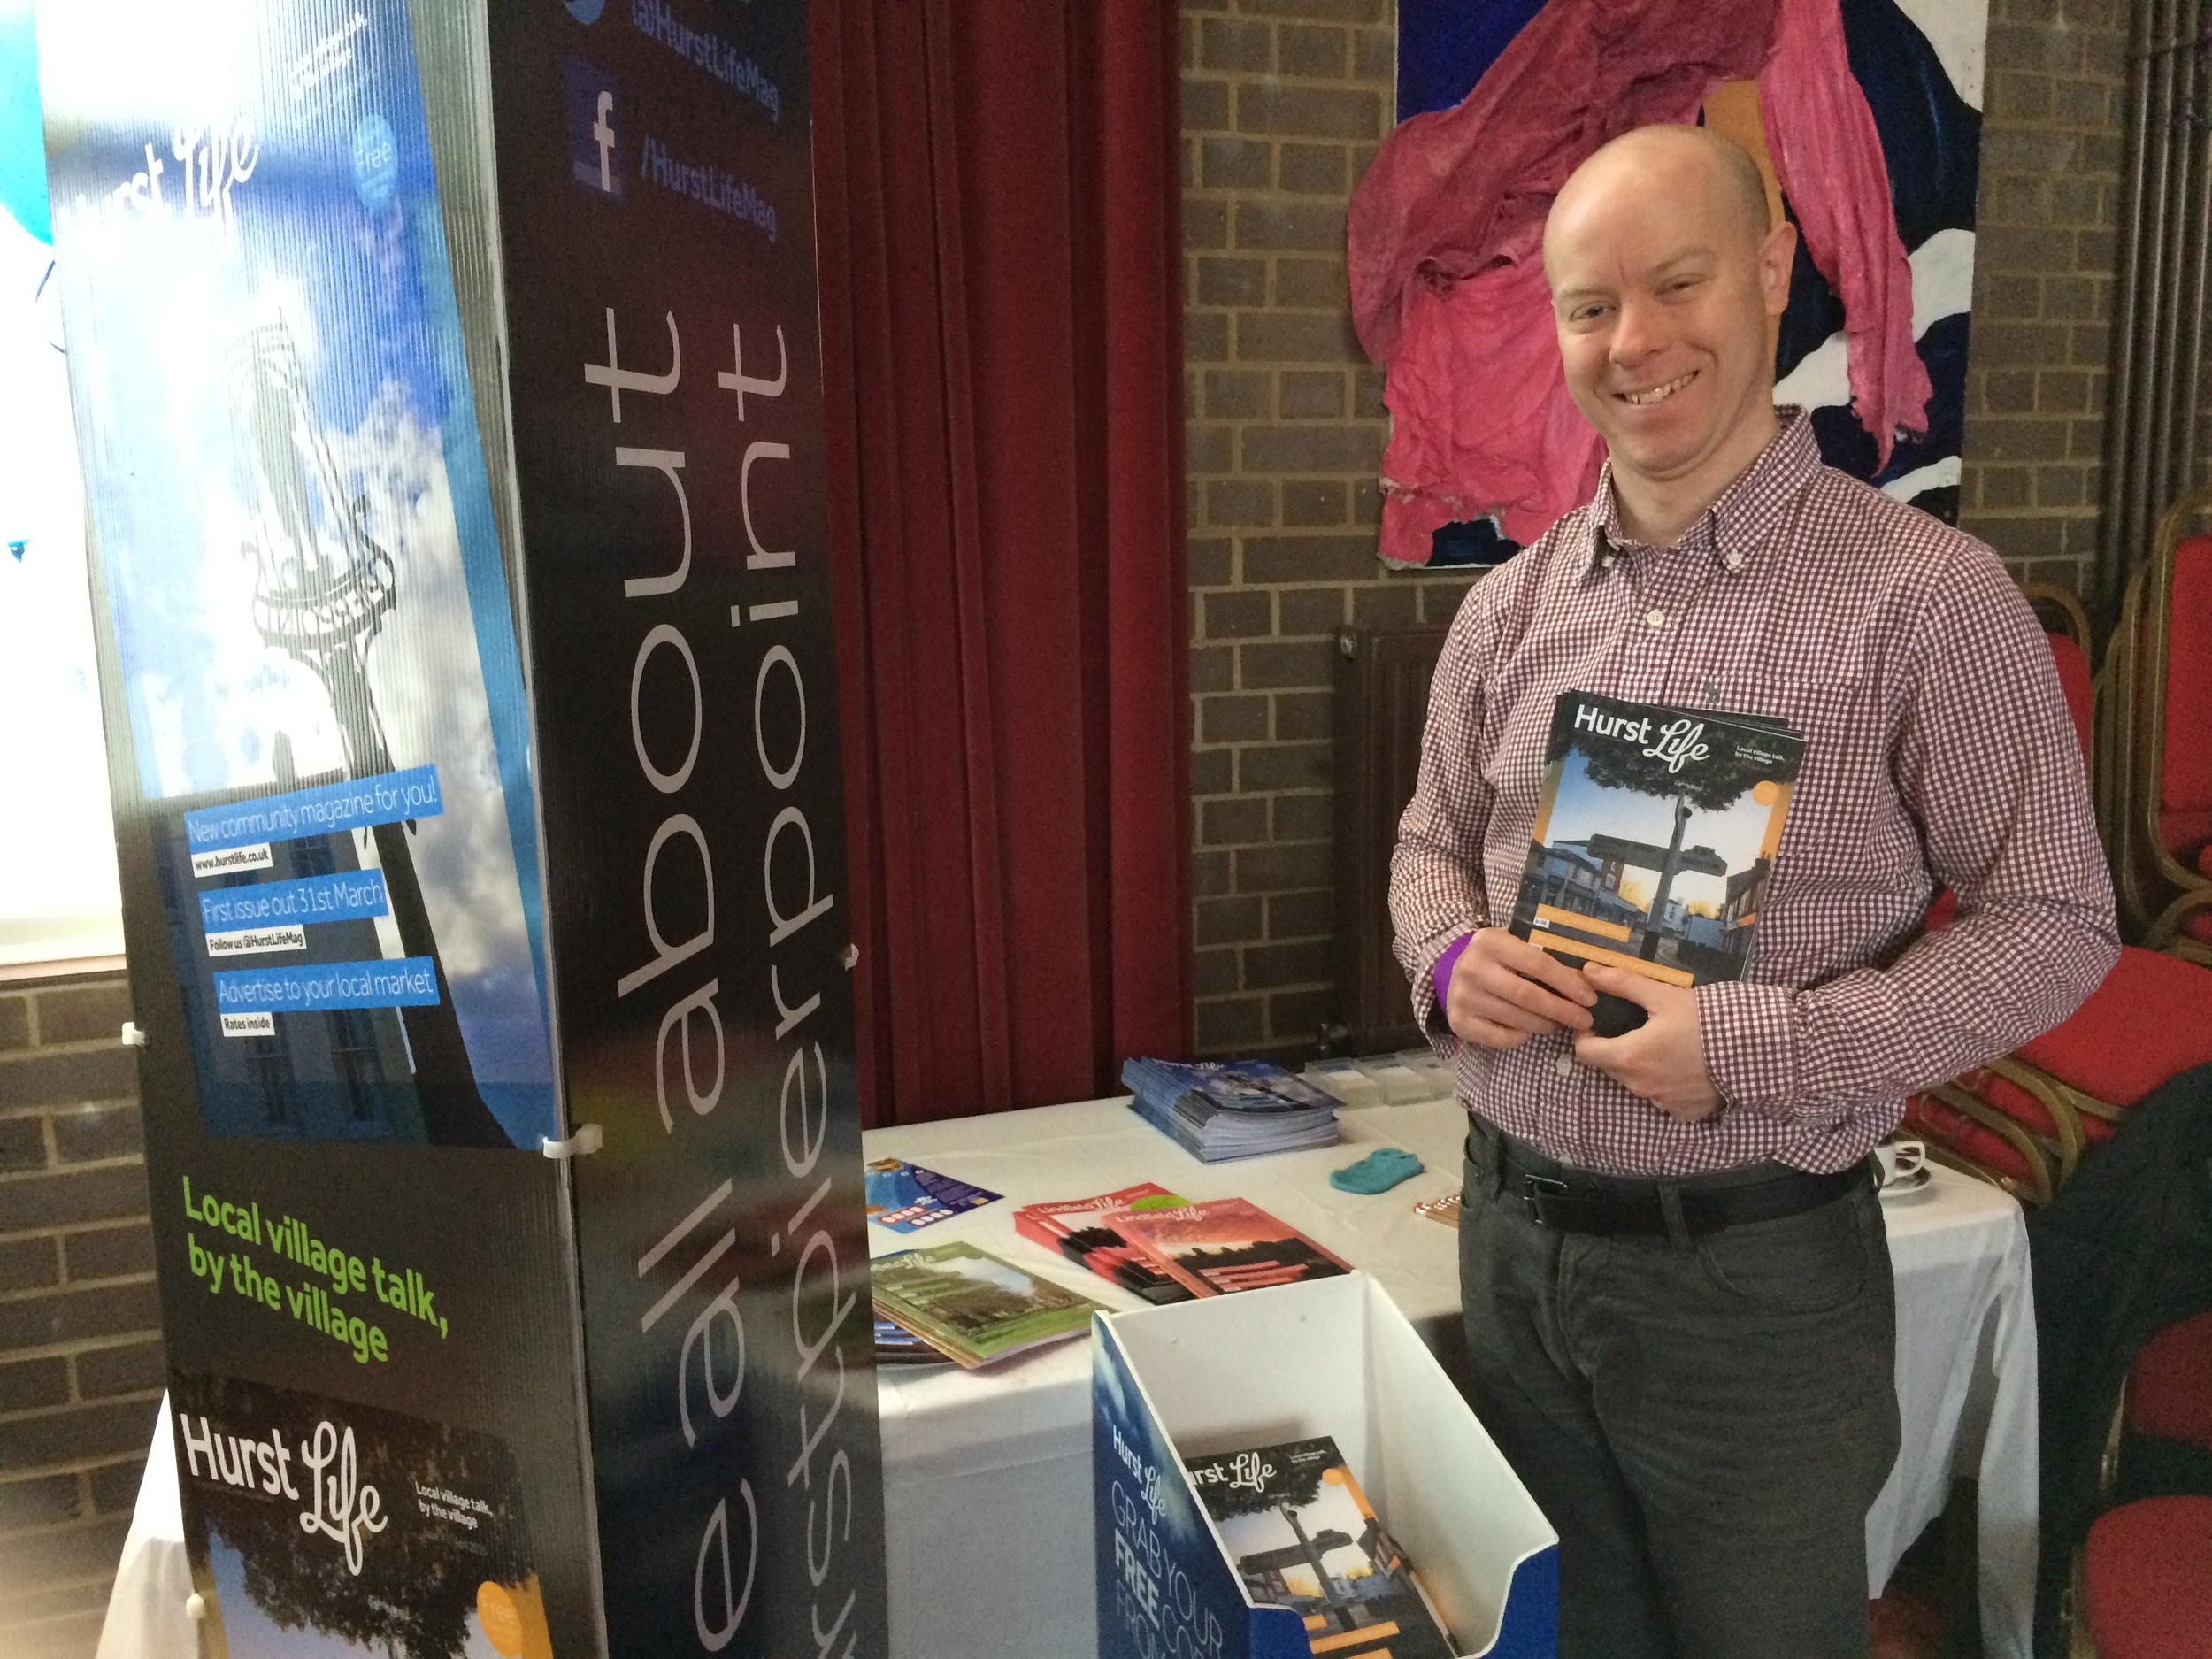 Hurst Life Magazine launches at Sussex Pages event